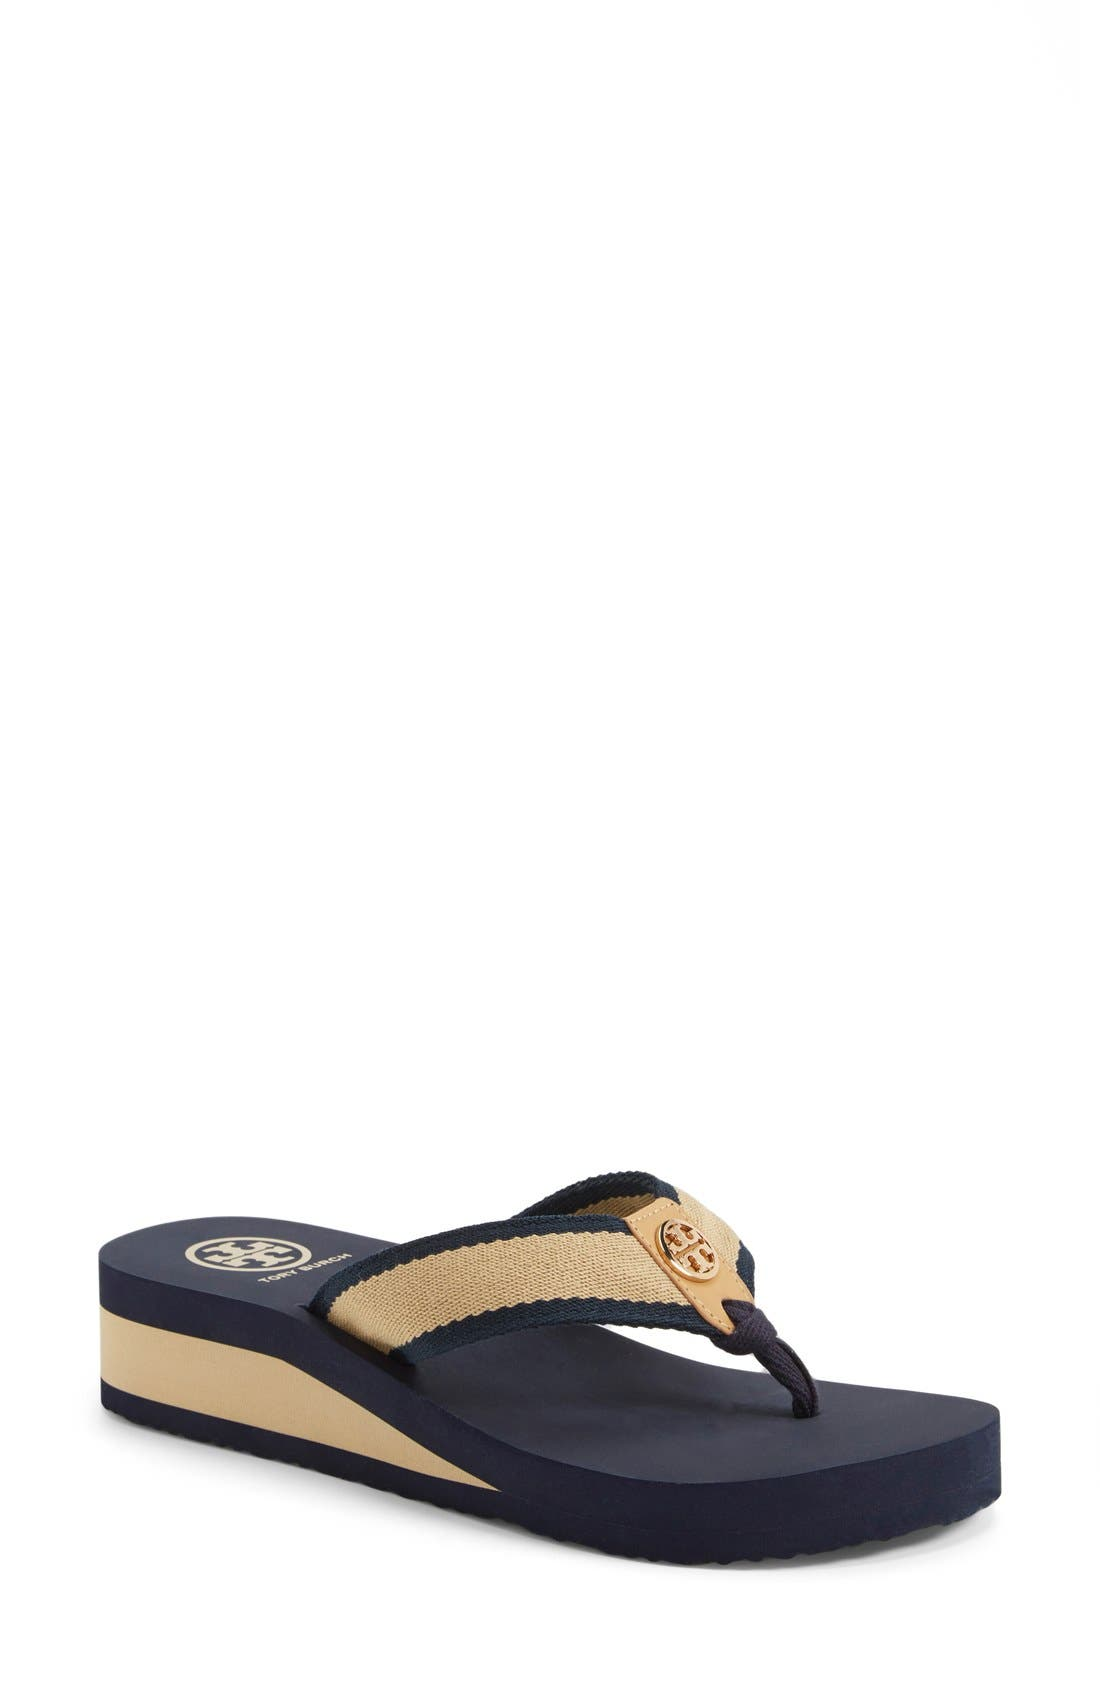 Main Image - Tory Burch 'Frankie' Wedge Sandal (Women) (Nordstrom Exclusive)